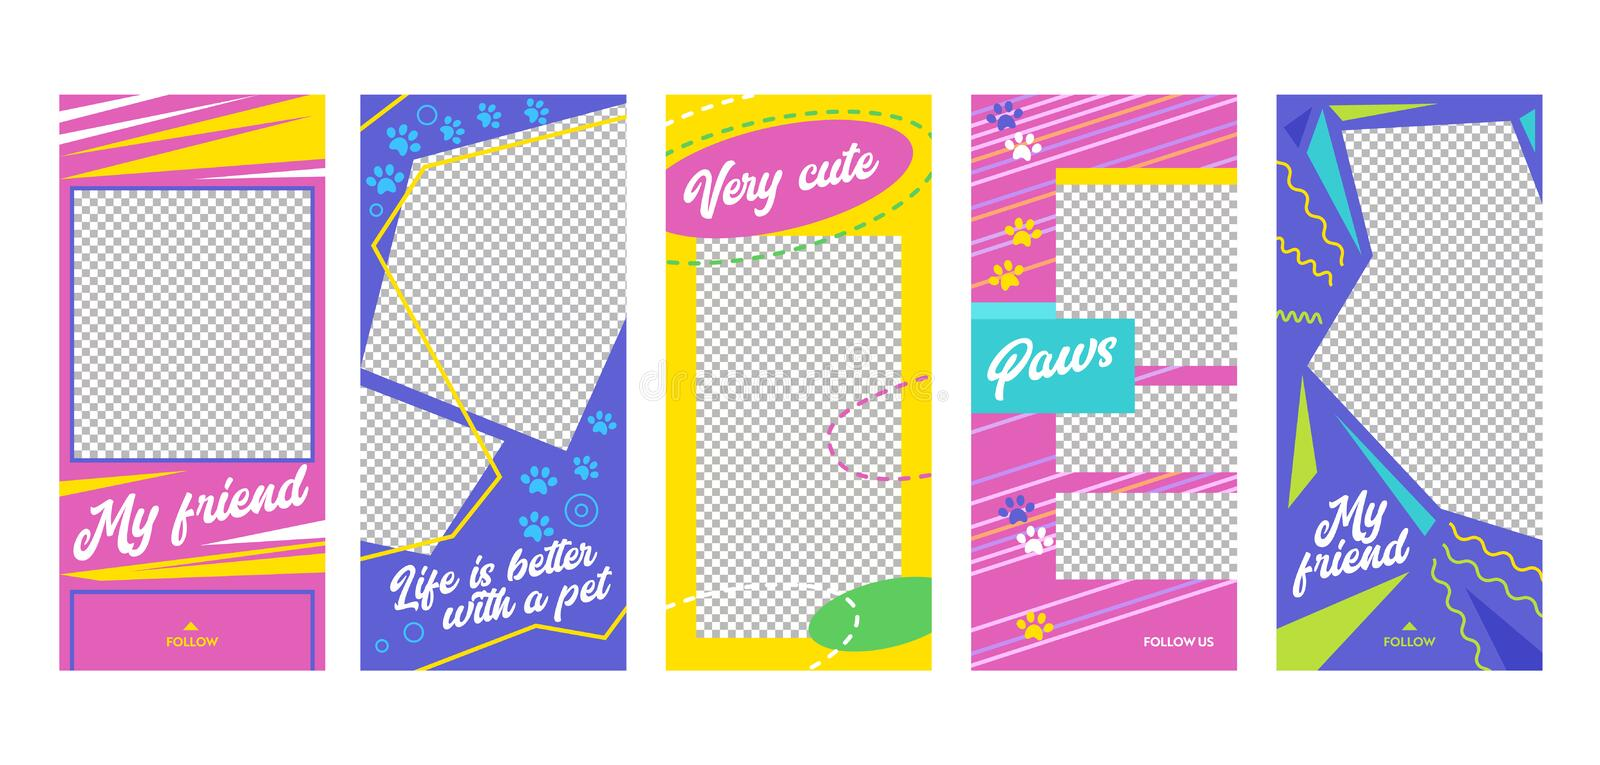 Instagram Story Very Cute Pet Friend Mobile App Page Onboard Screen Set. Colorful Blue Yellow Pink Design with Trace. Social Media. Background Website or Web stock illustration